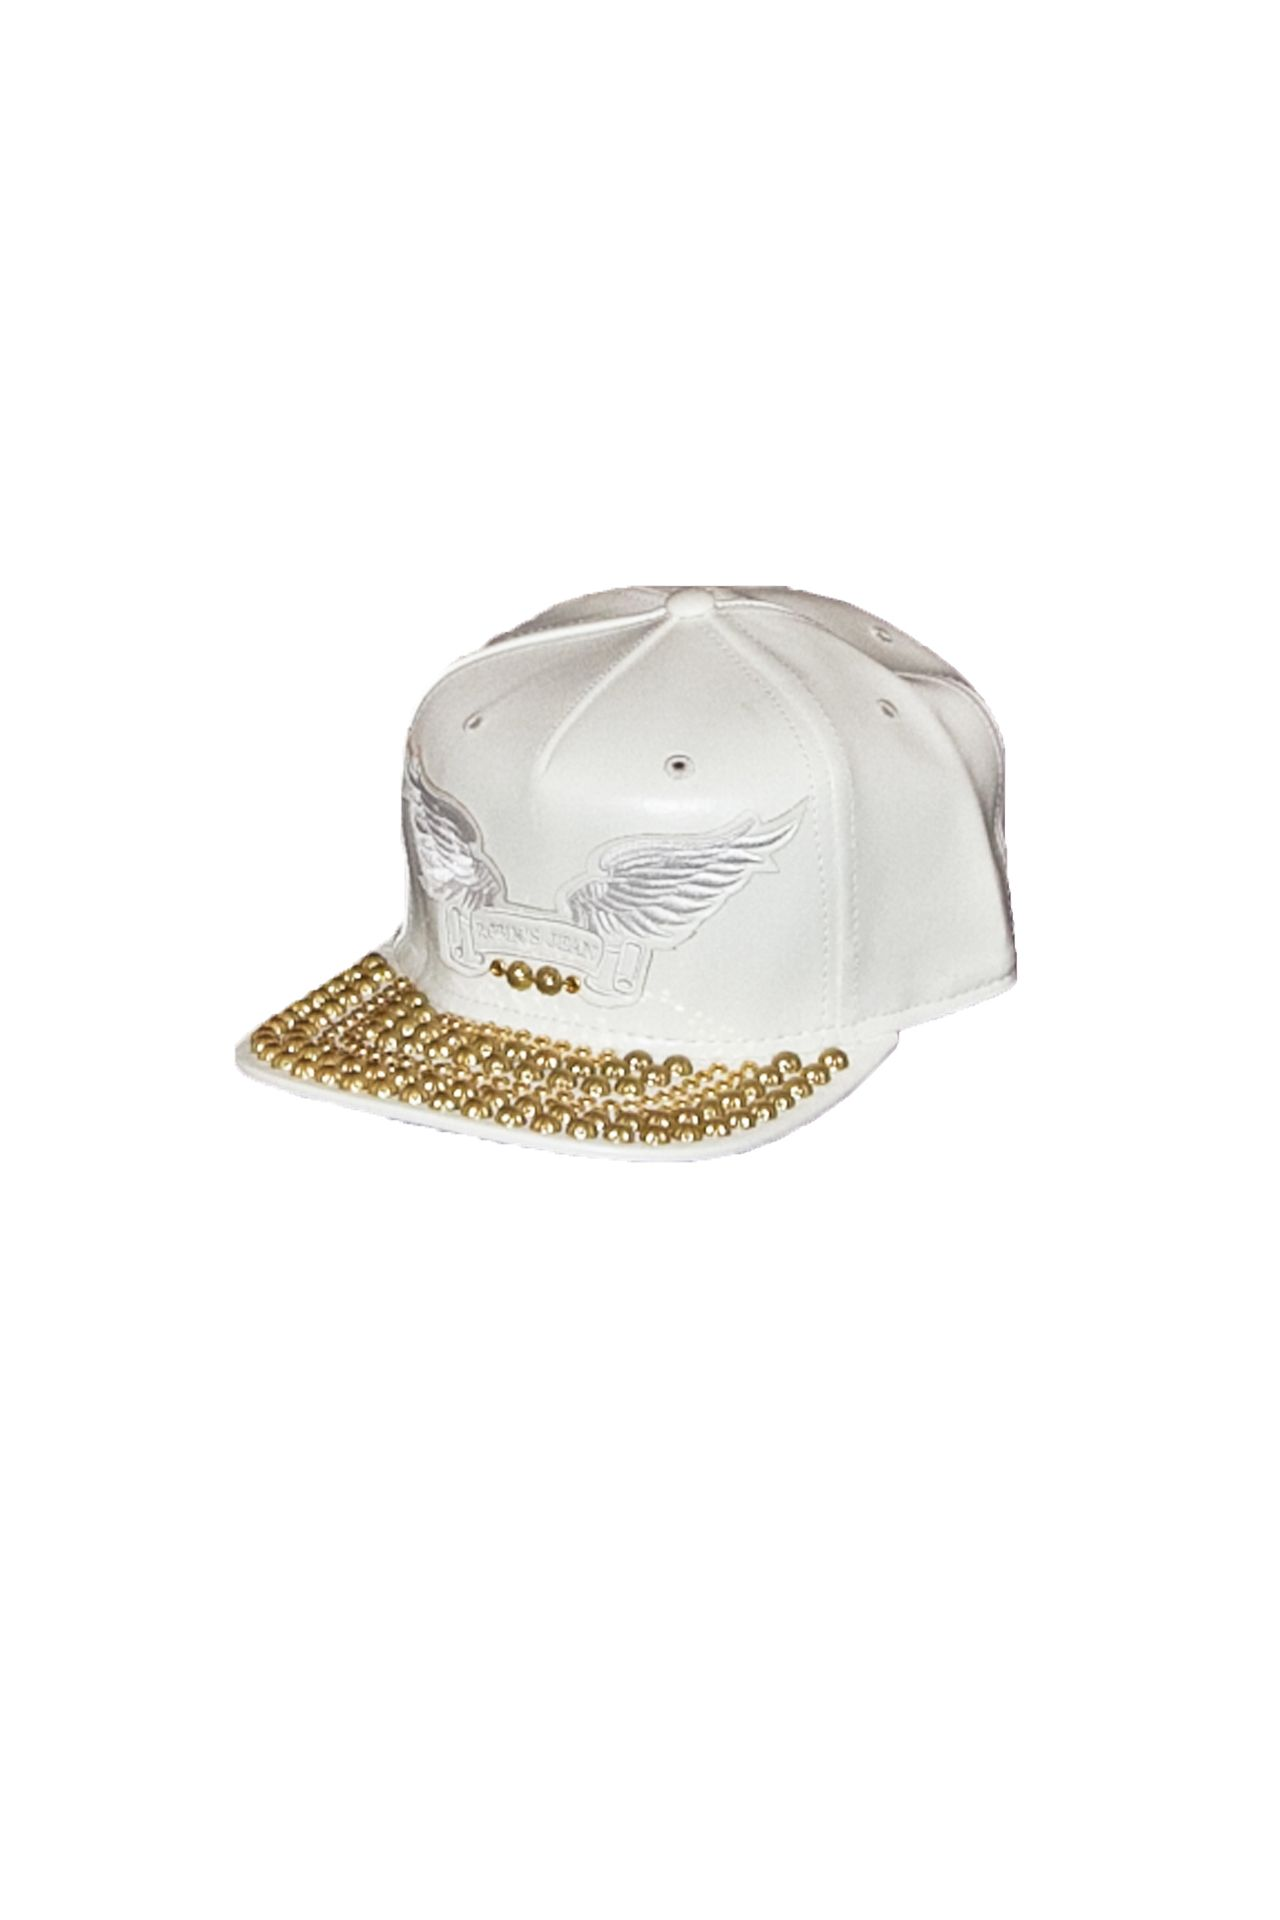 WHITE LEATHER LOOK CAP STUDS AND CRYSTALS